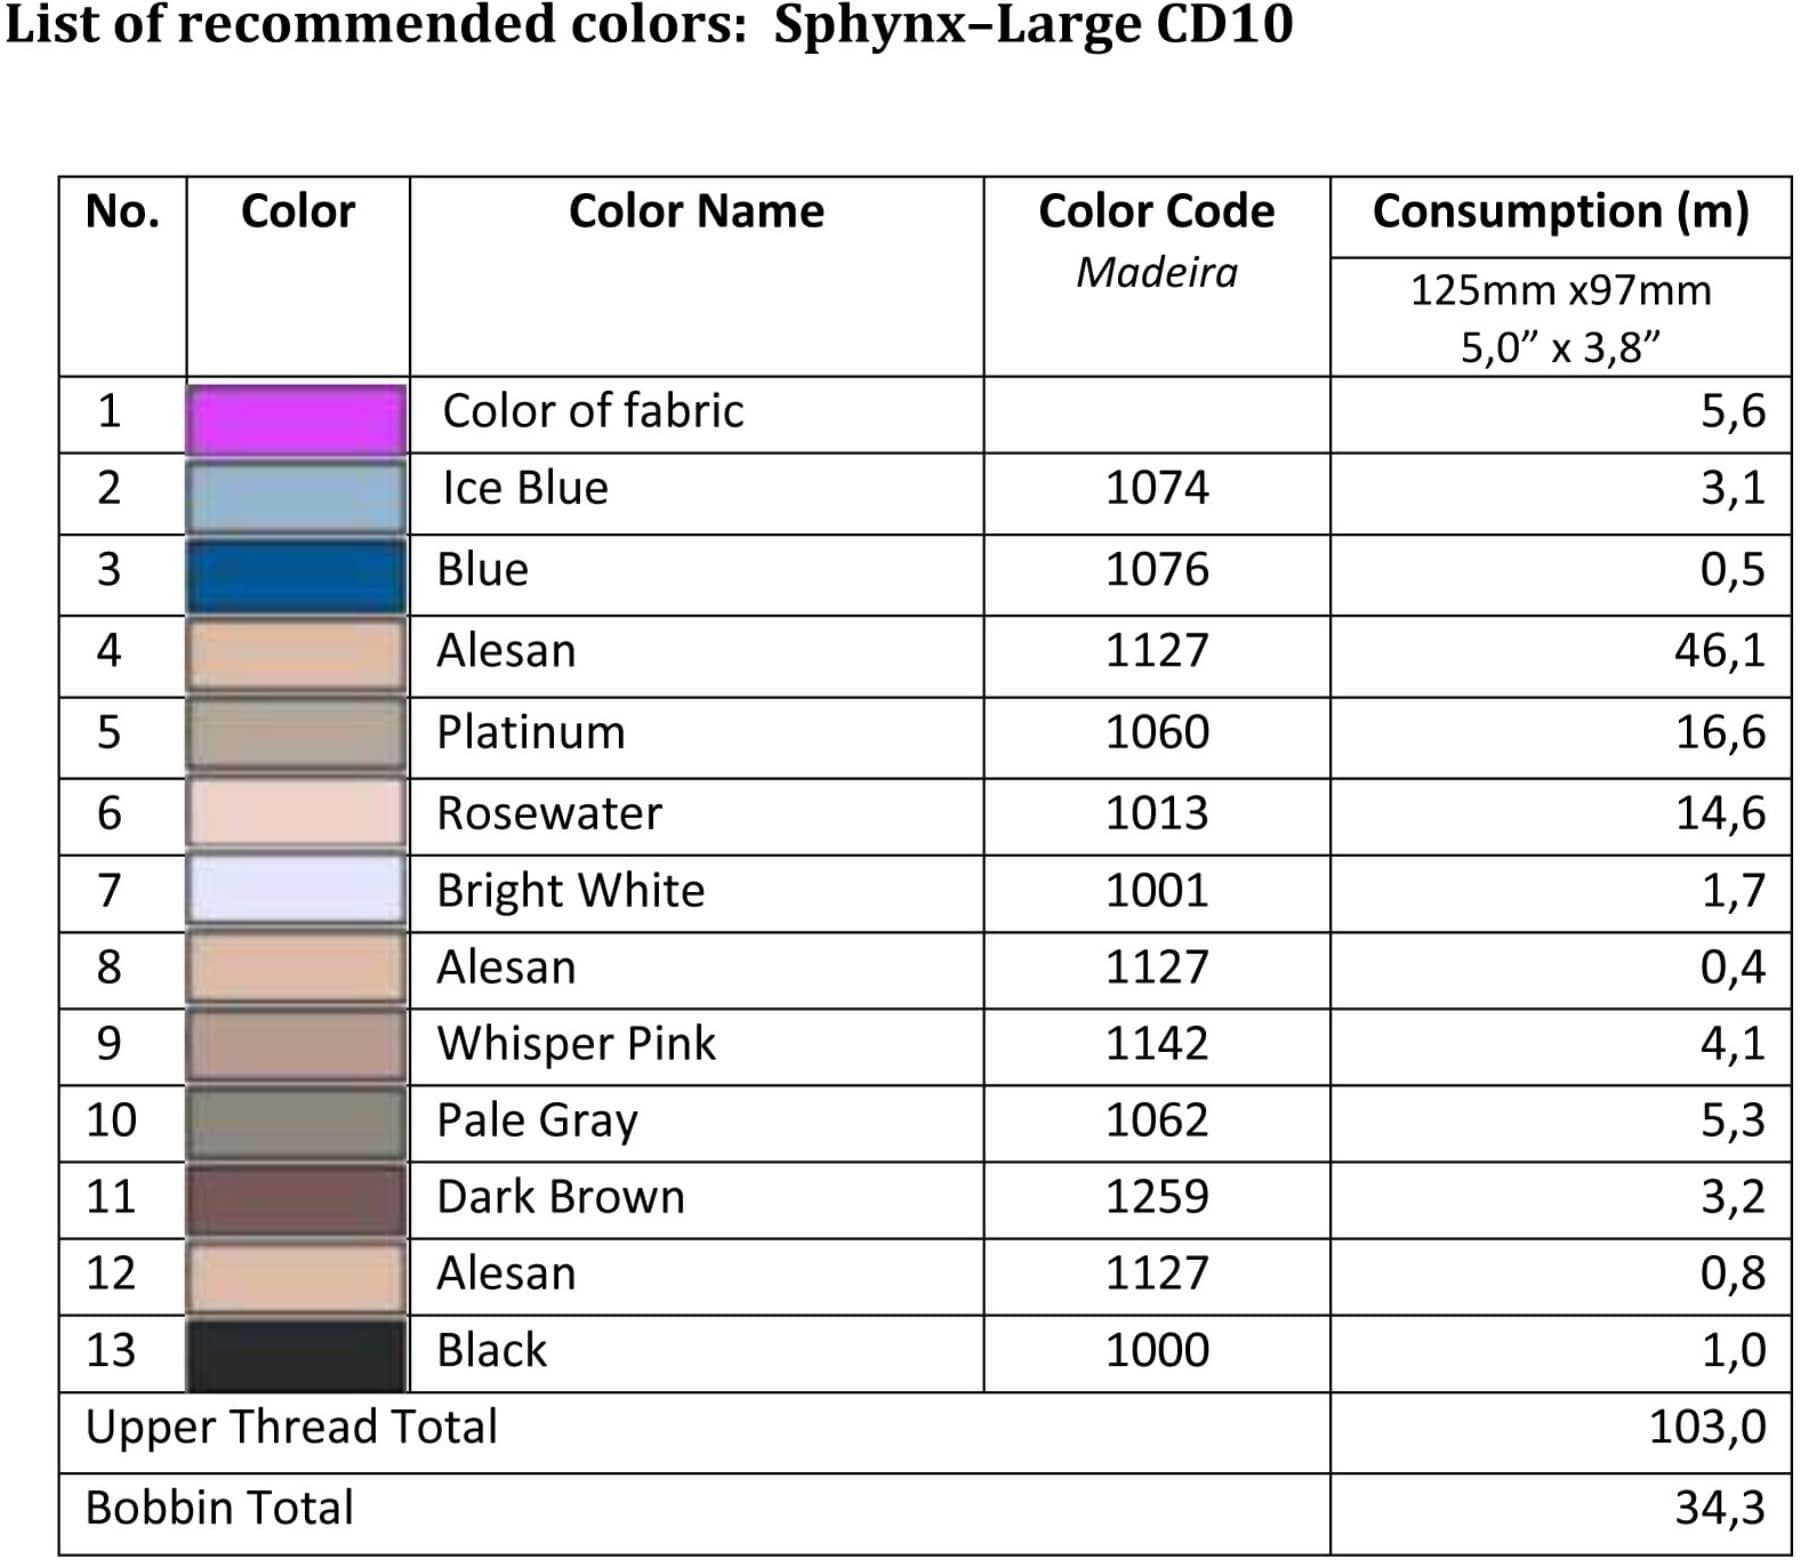 List of recommended colors -Large CD10